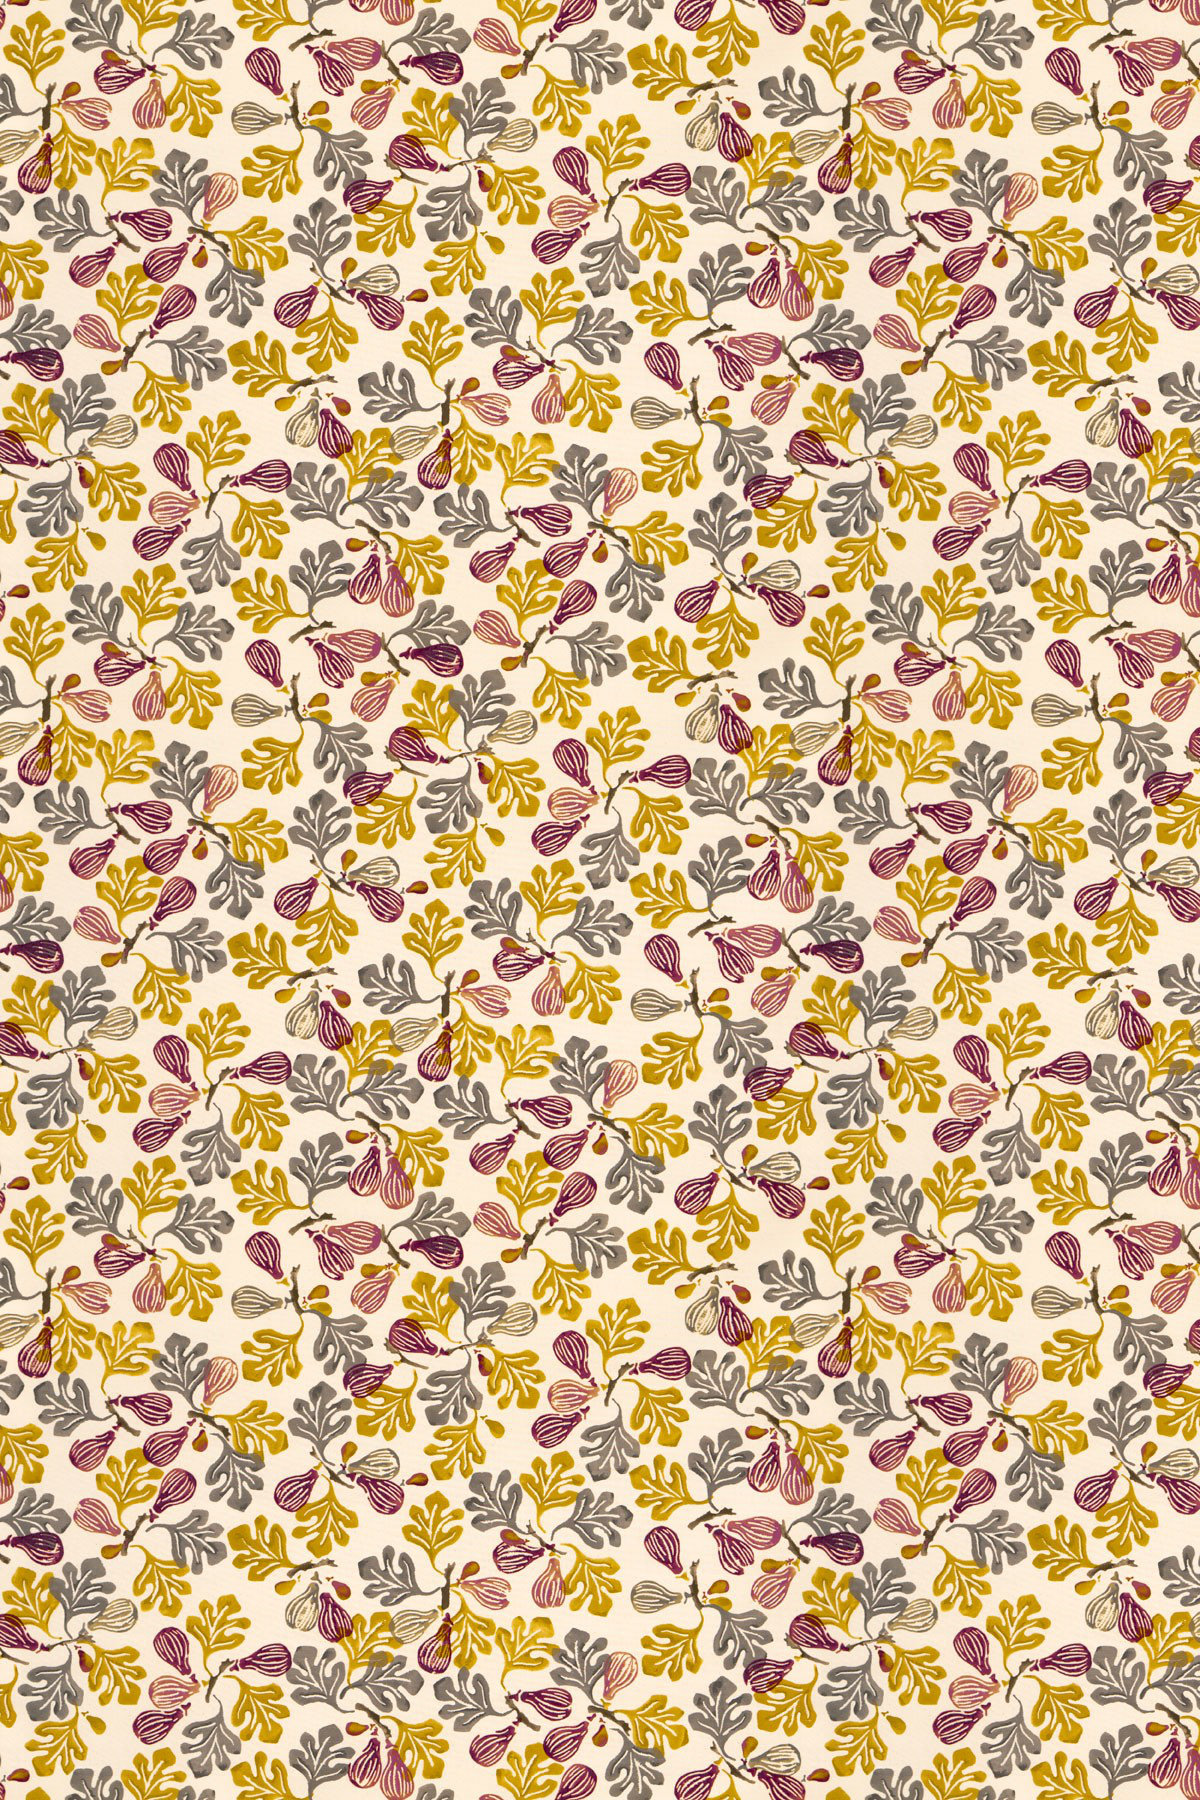 Image of Emma Bridgewater Fabric Figs Red/Ochre, 223426